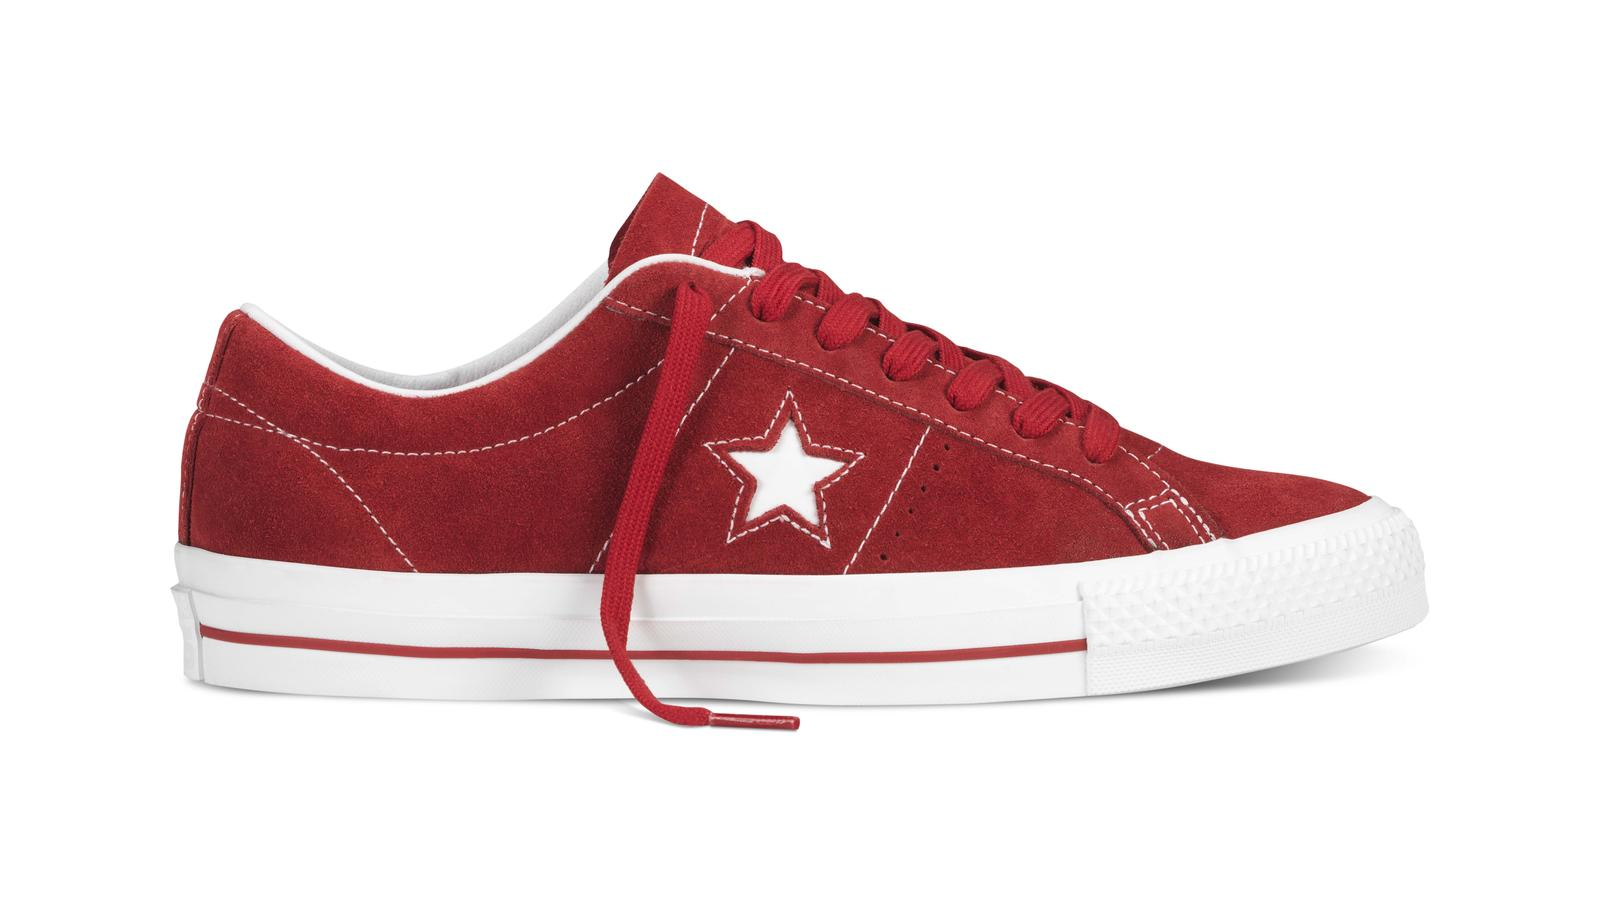 Converse Cons Ways Pro Updated Color The In One Star Iconic Debuts htdCsrQ